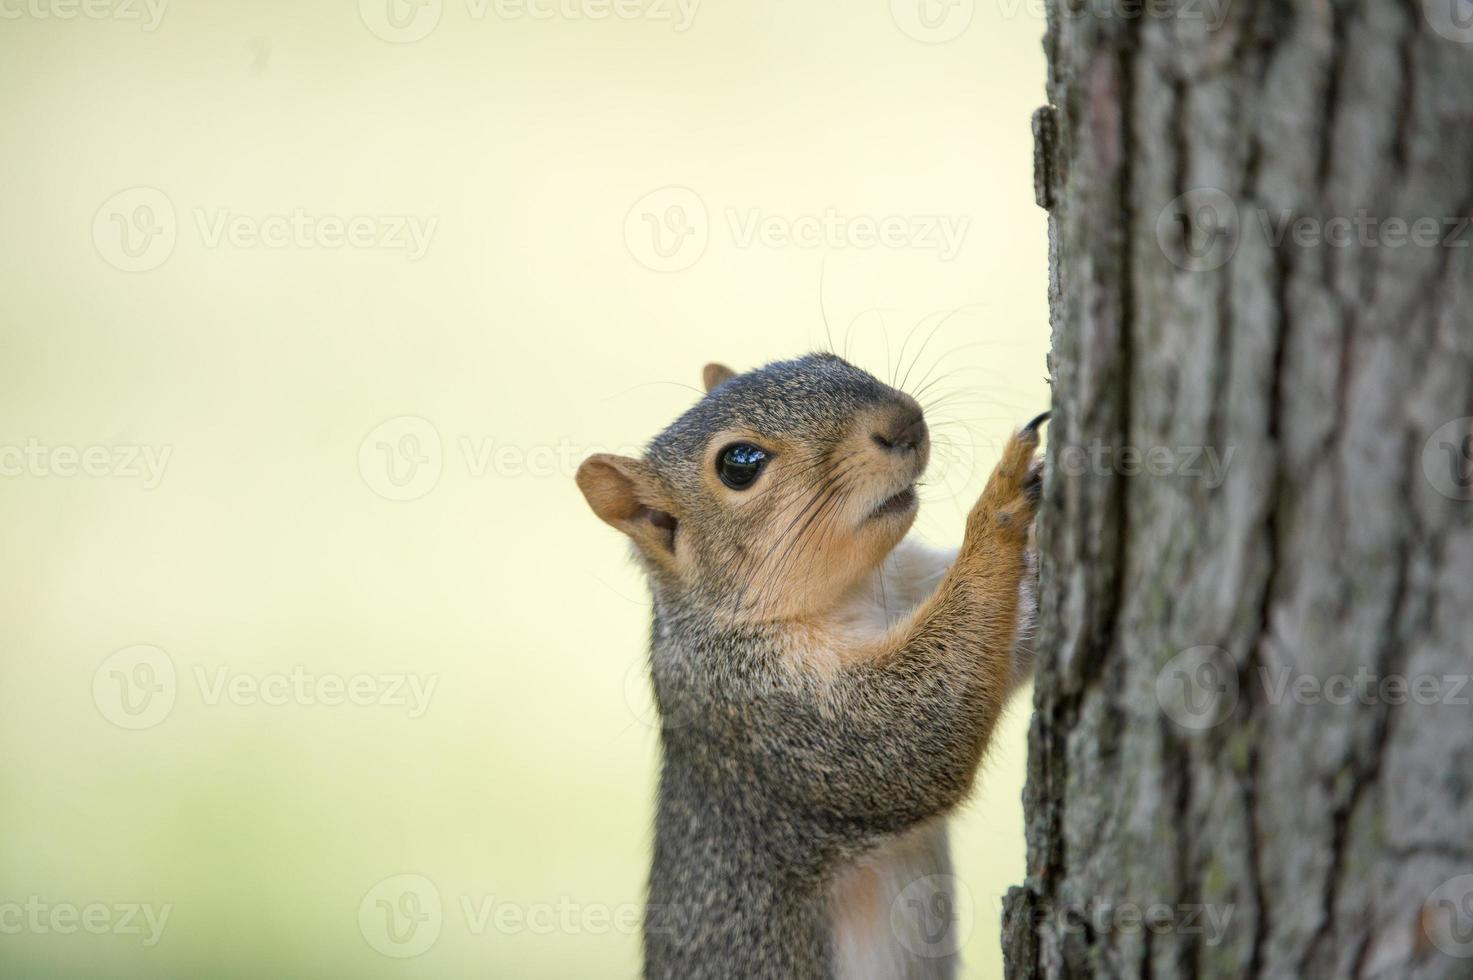 Eastern gray squirrel on tree photo